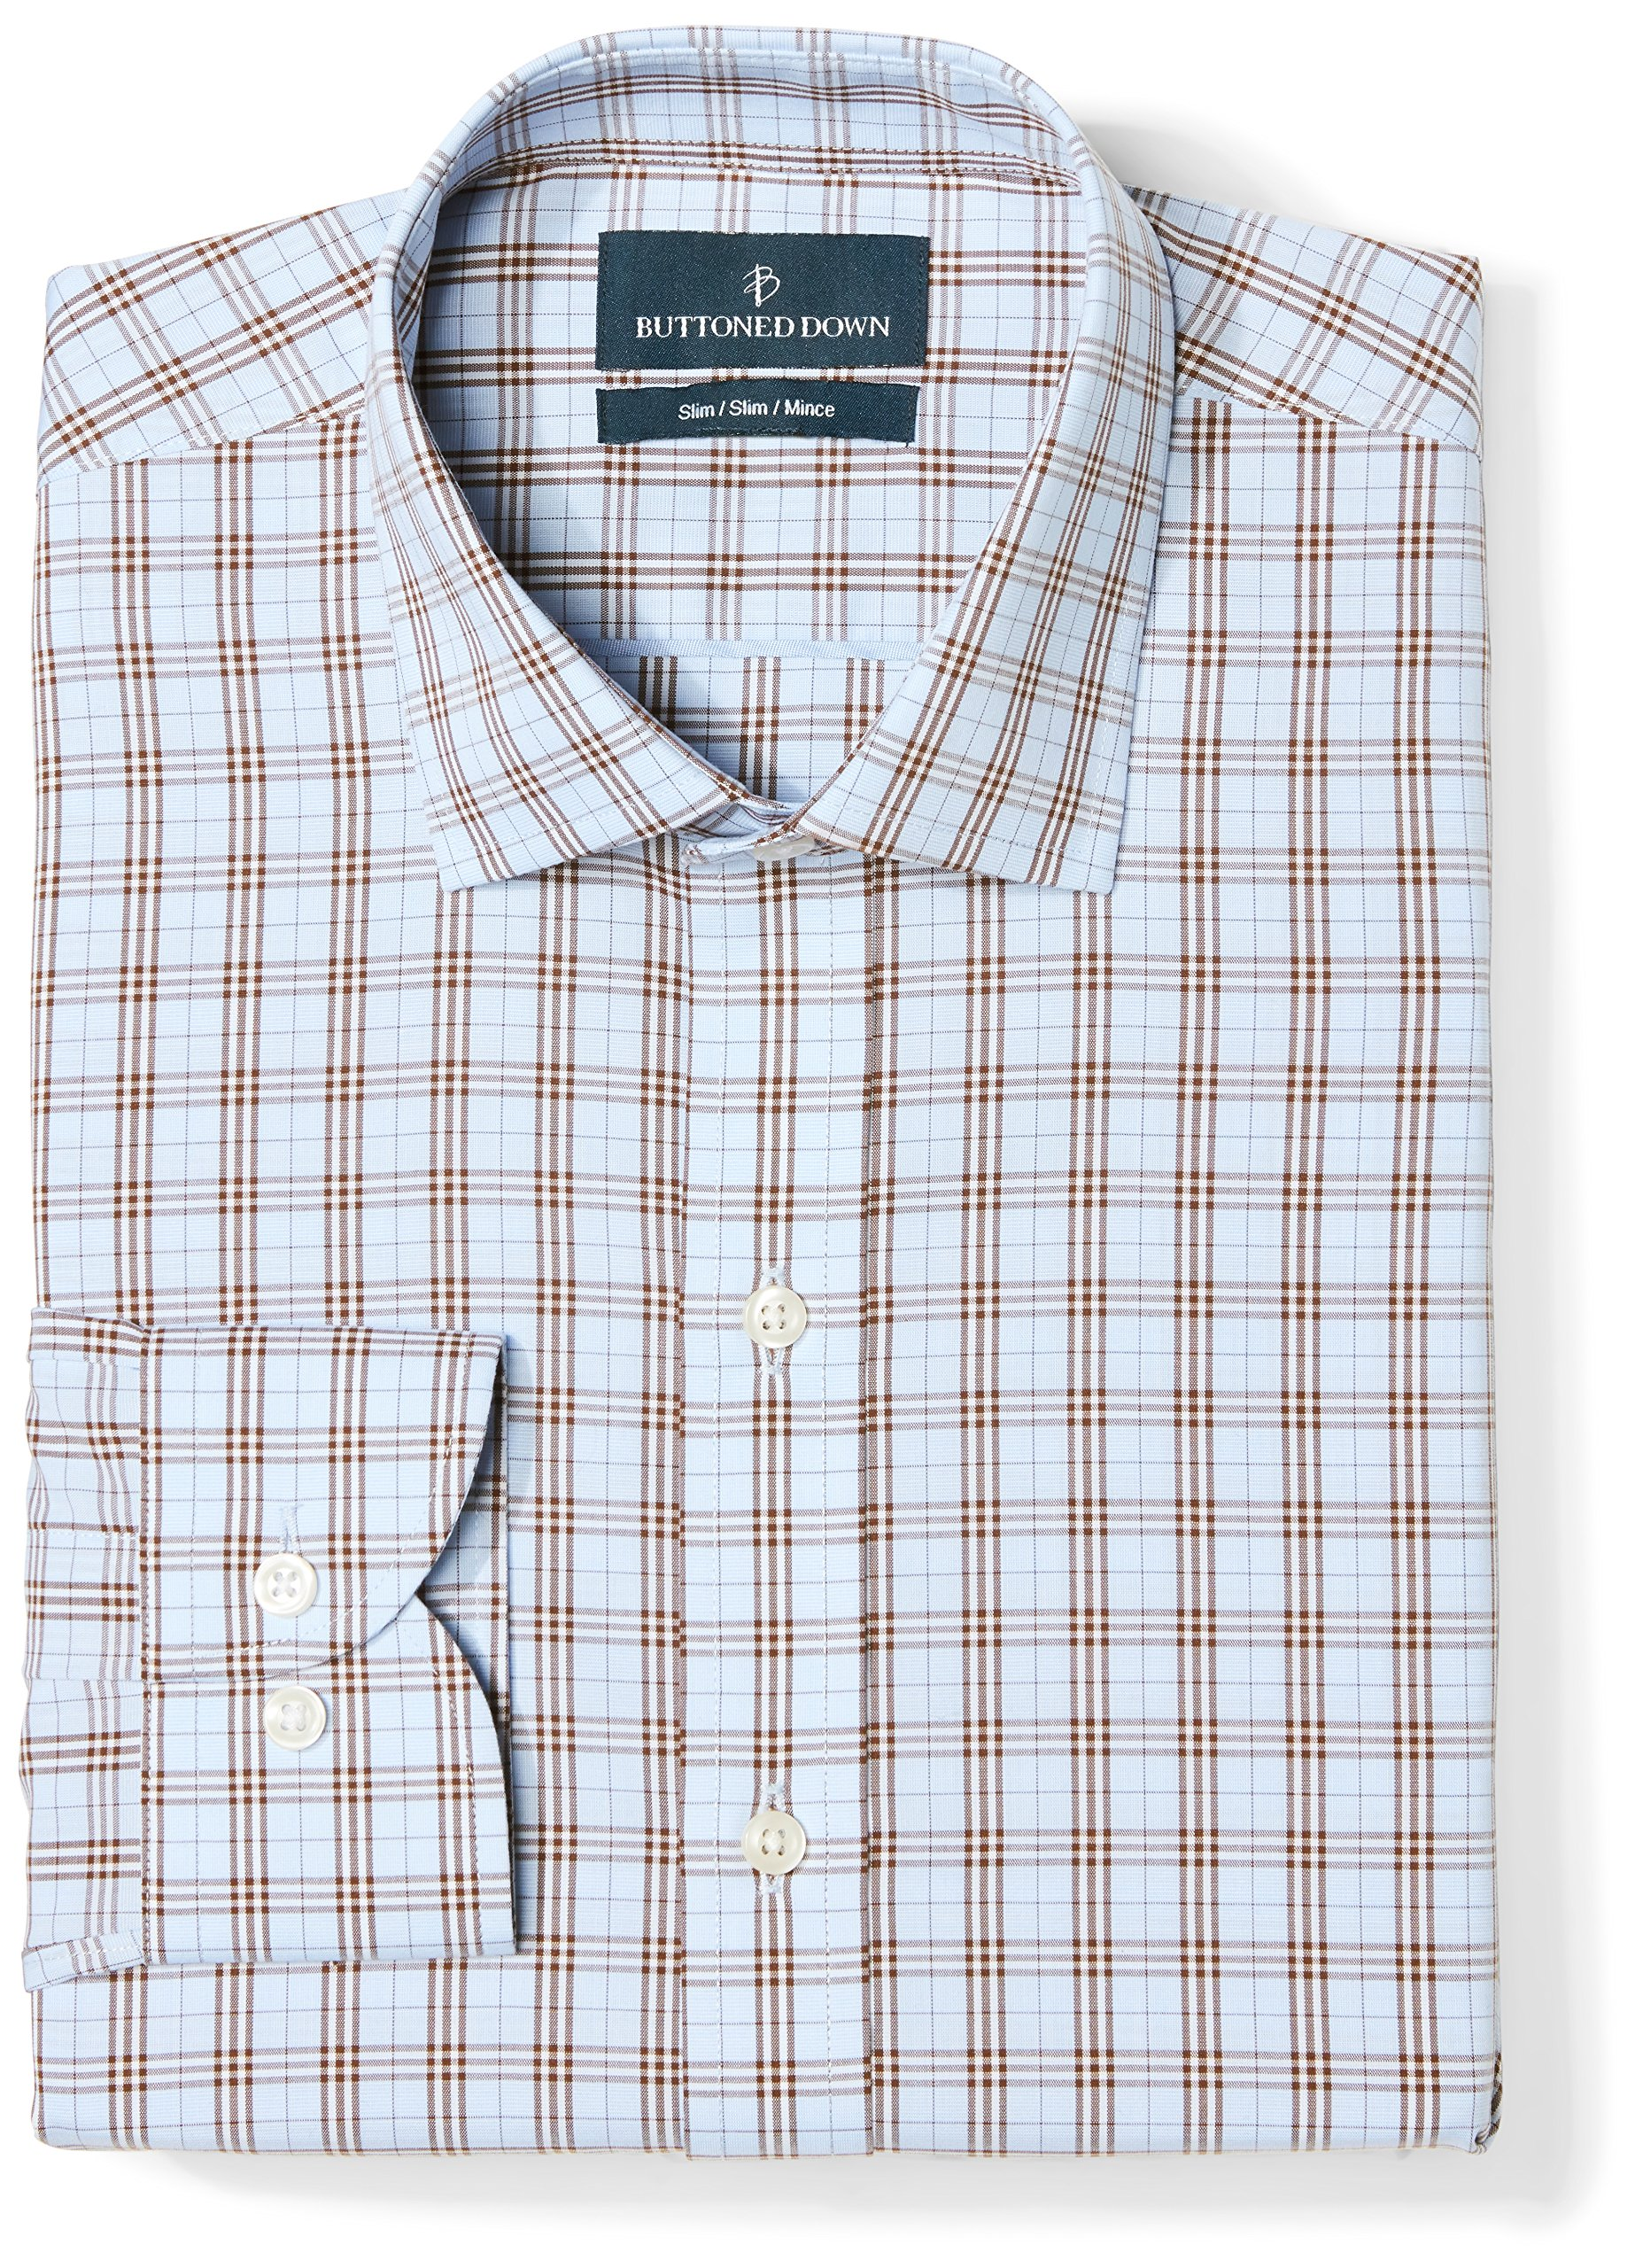 Buttoned Down Men's Slim Fit Spread Collar Pattern, Blue/Brown Plaid, 16'' Neck 33'' Sleeve